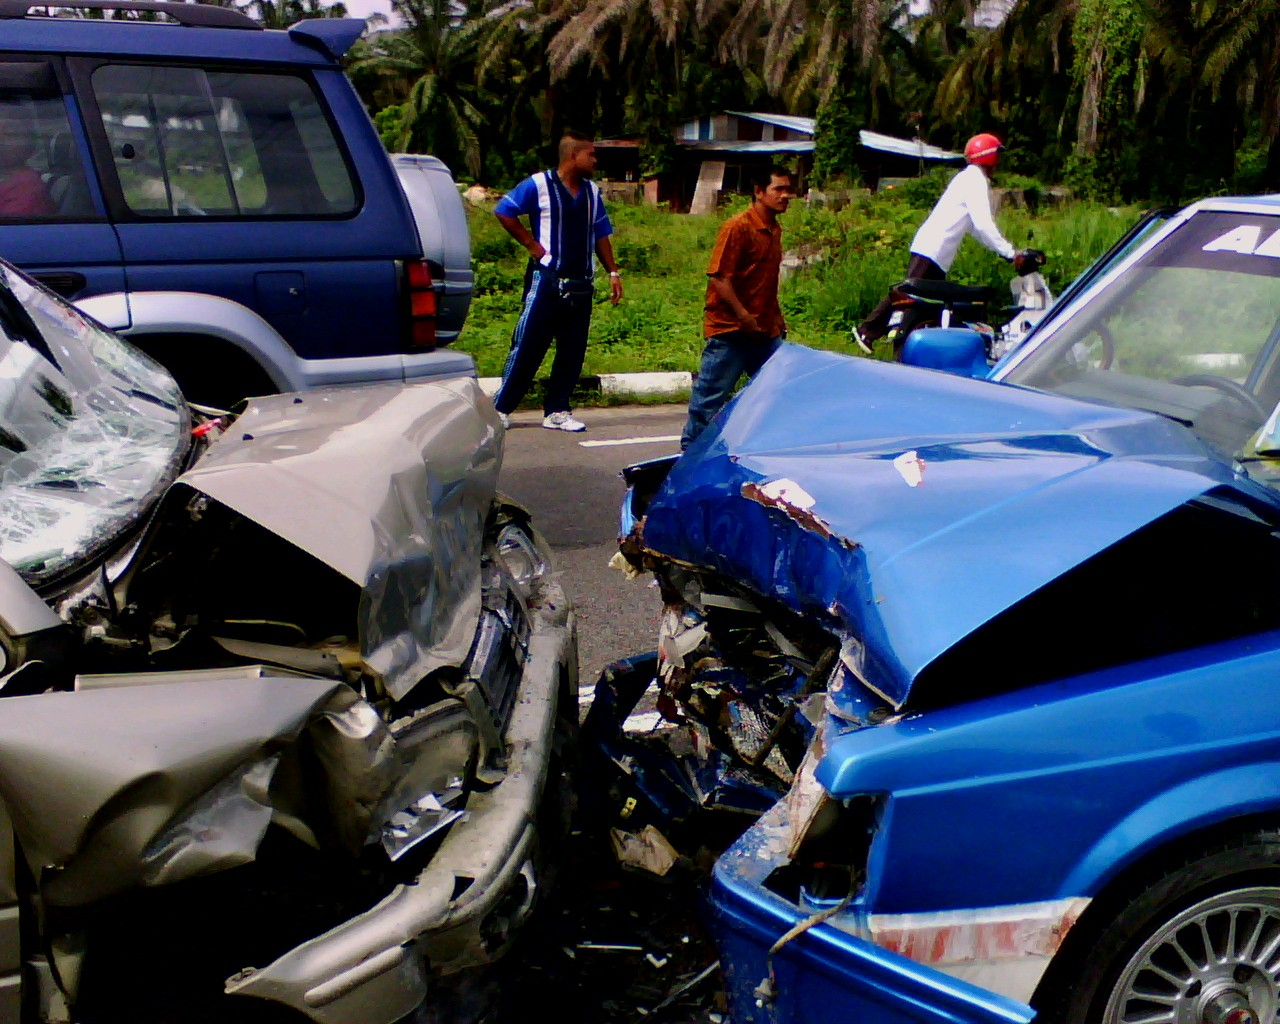 vehicles after an accident